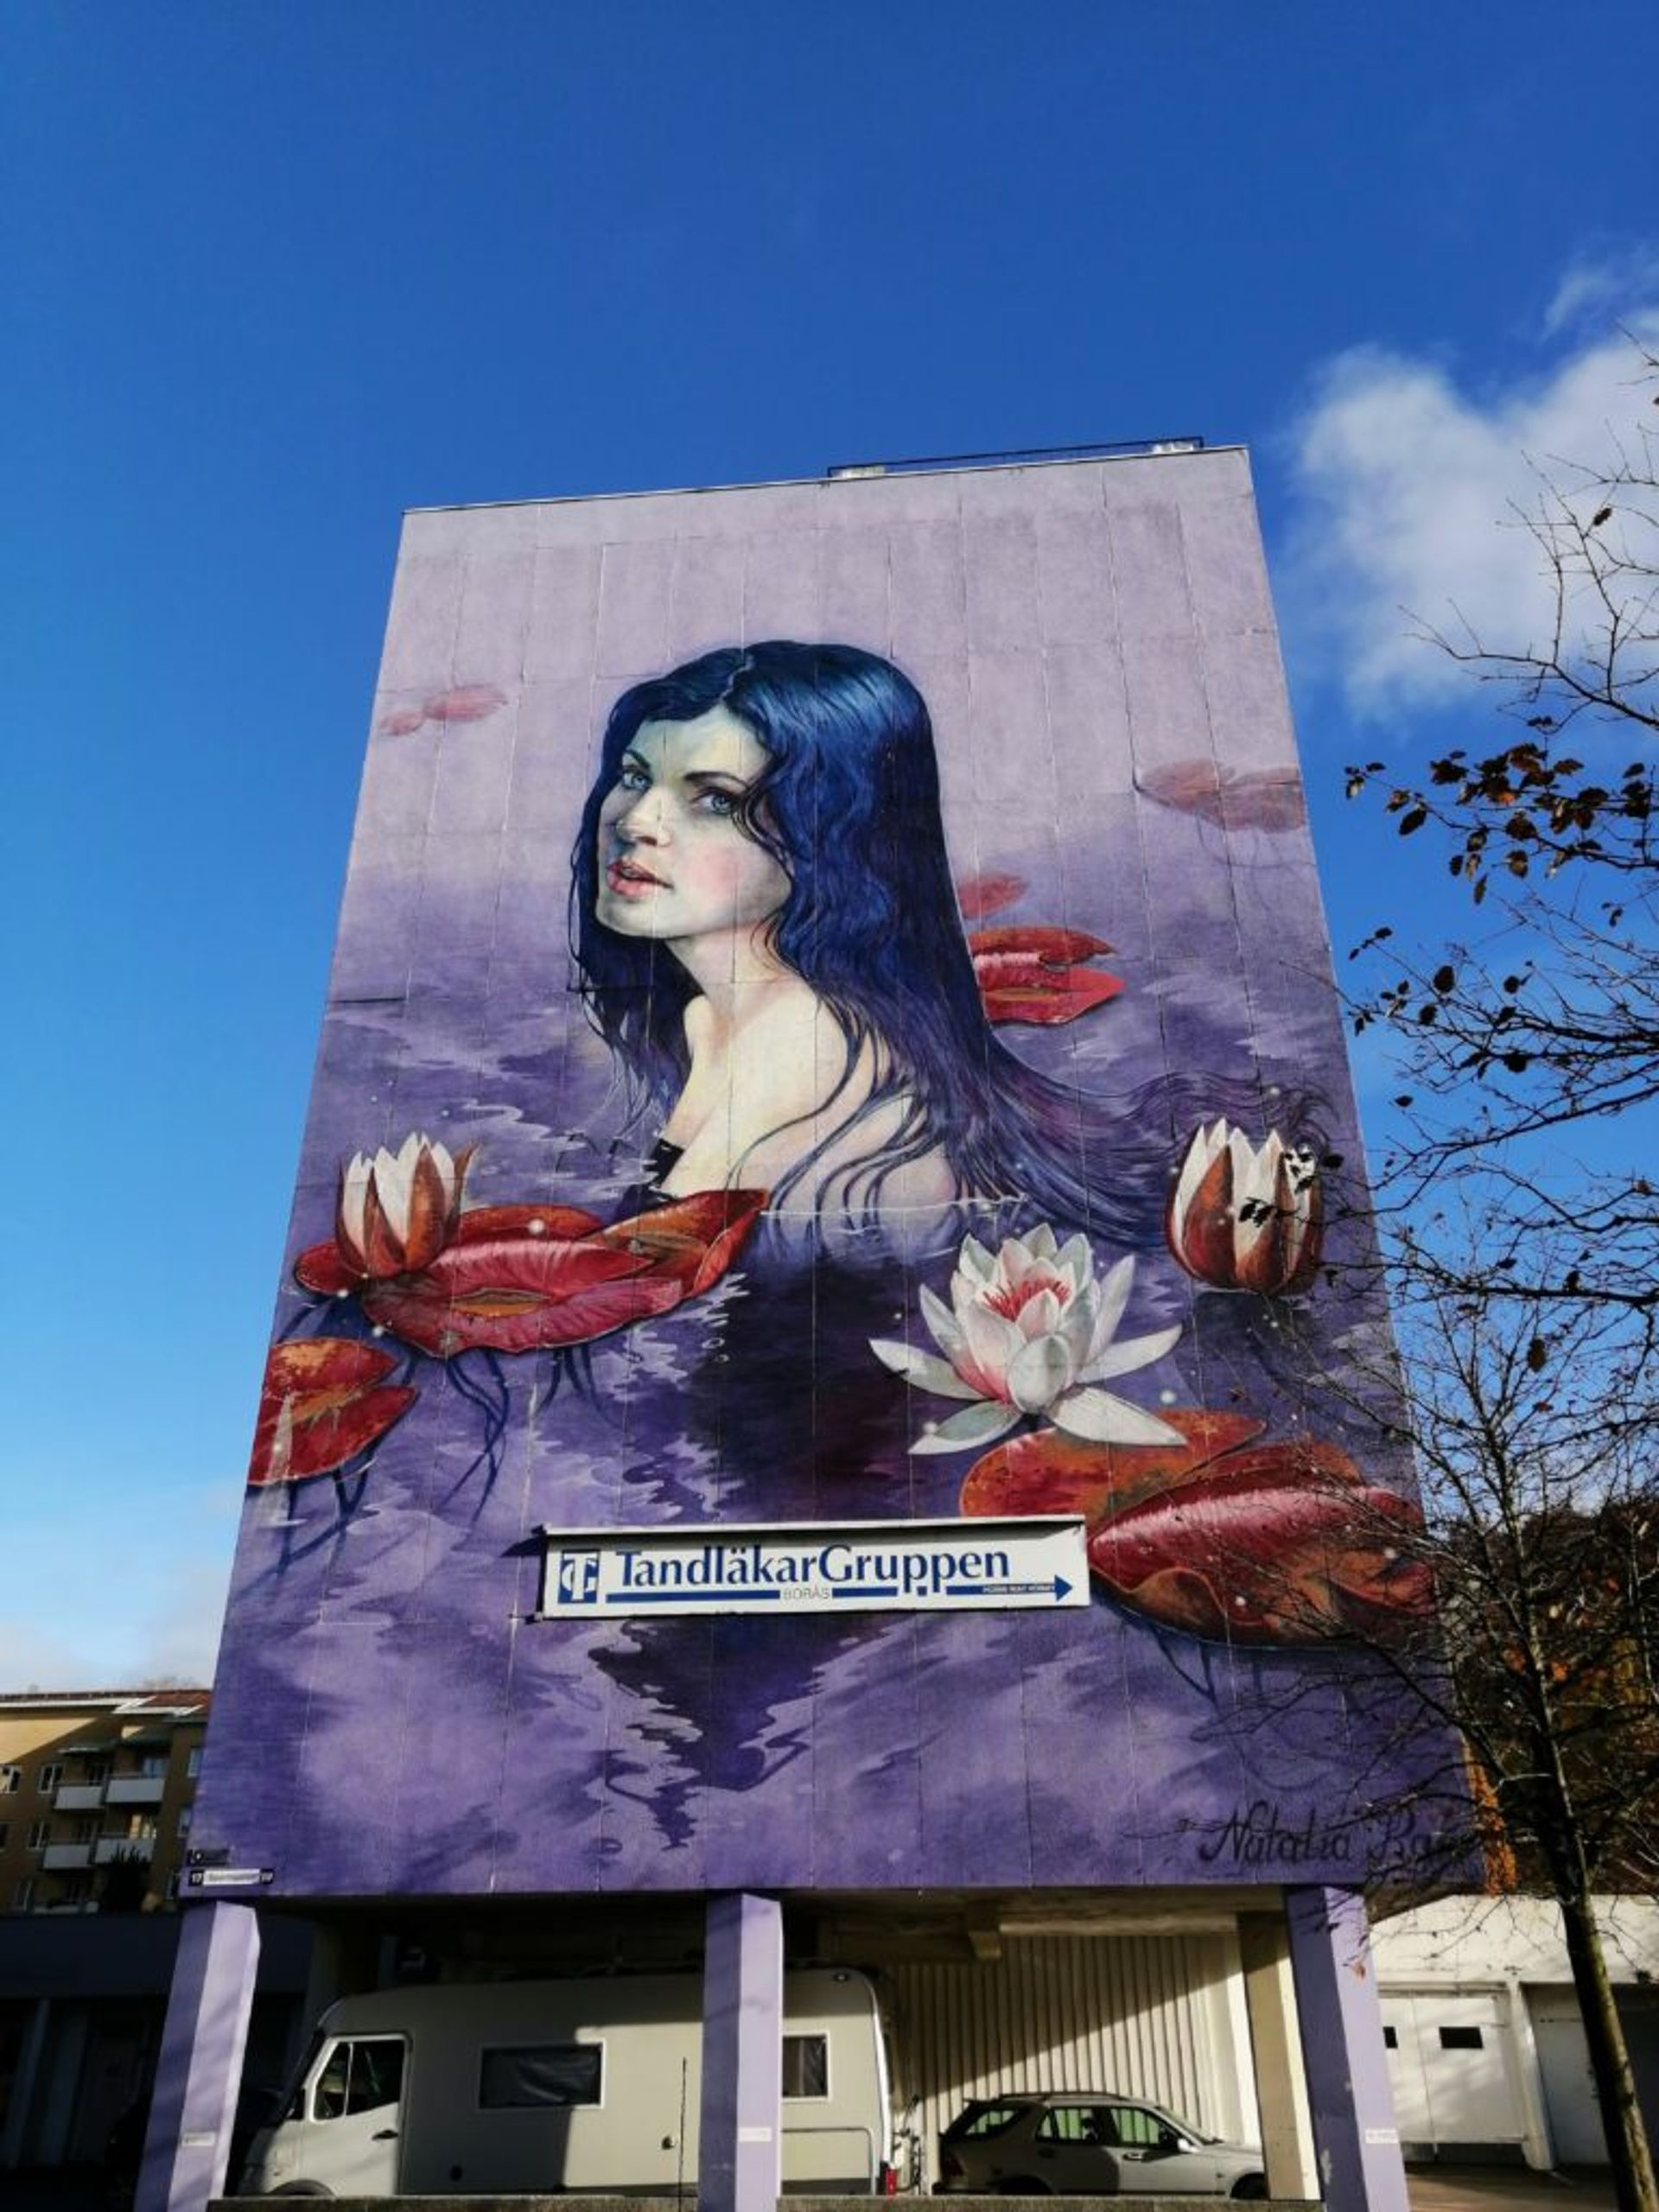 Mural of a woman swimming in purple and blue water on the side of a residential building in Borås.